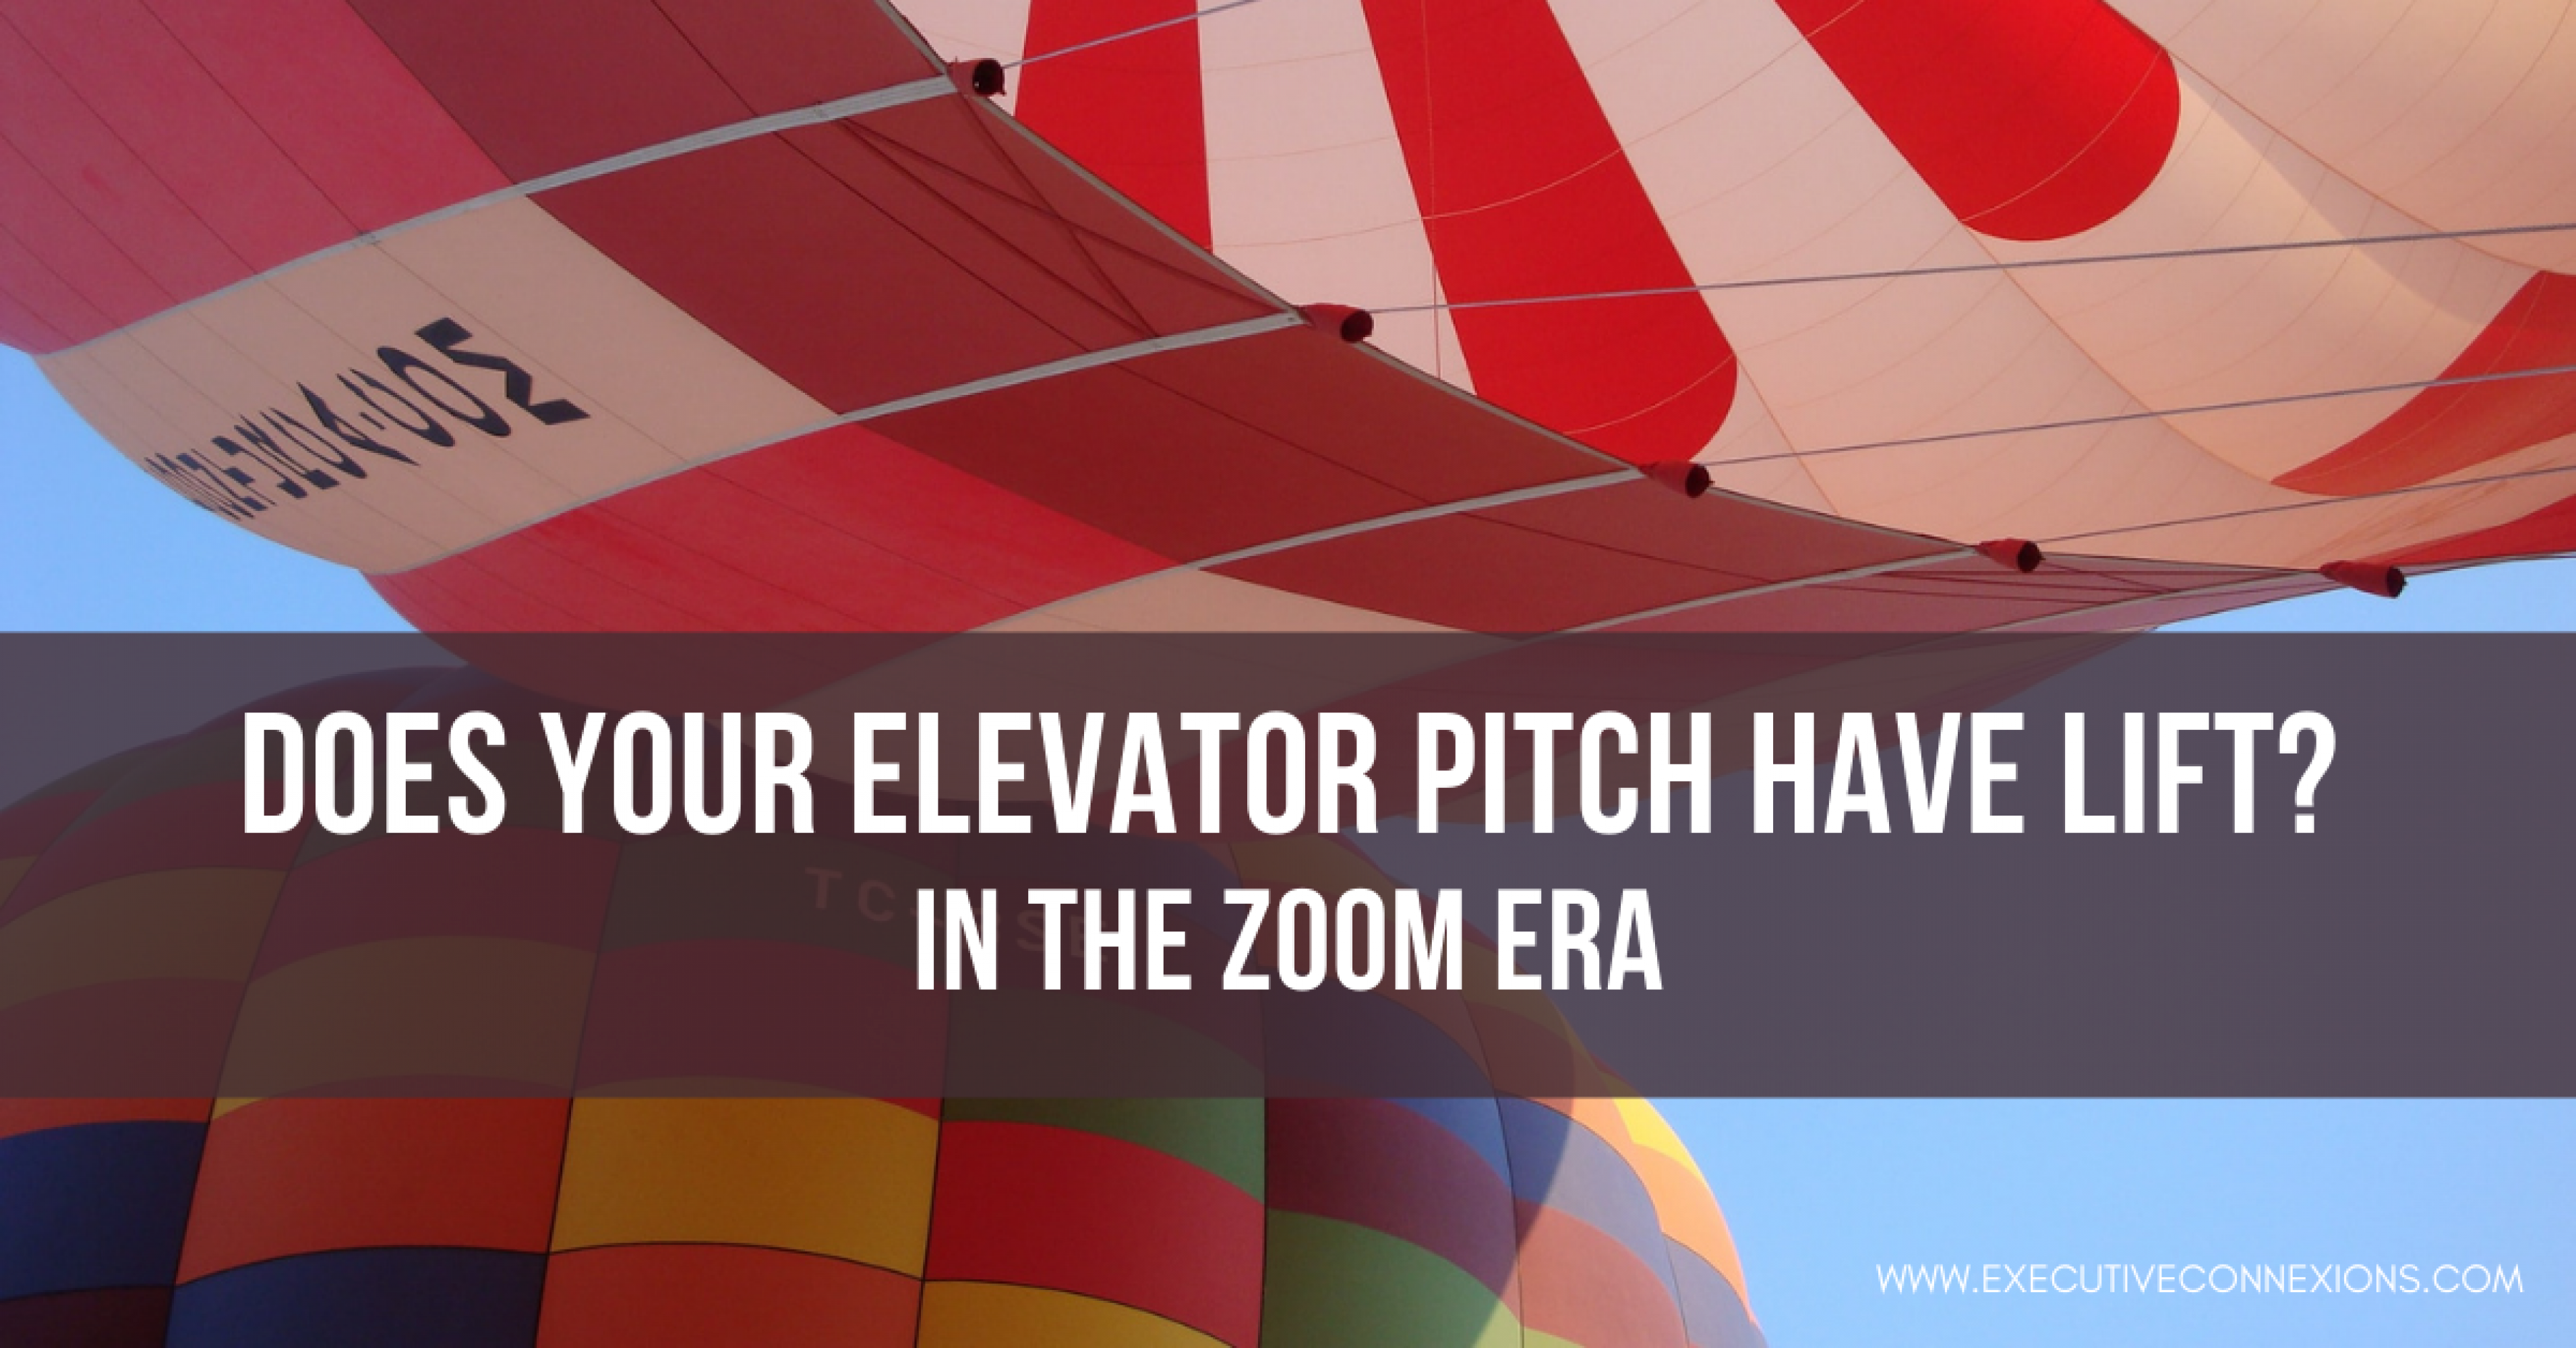 Does Your Elevator Pitch Have Lift?